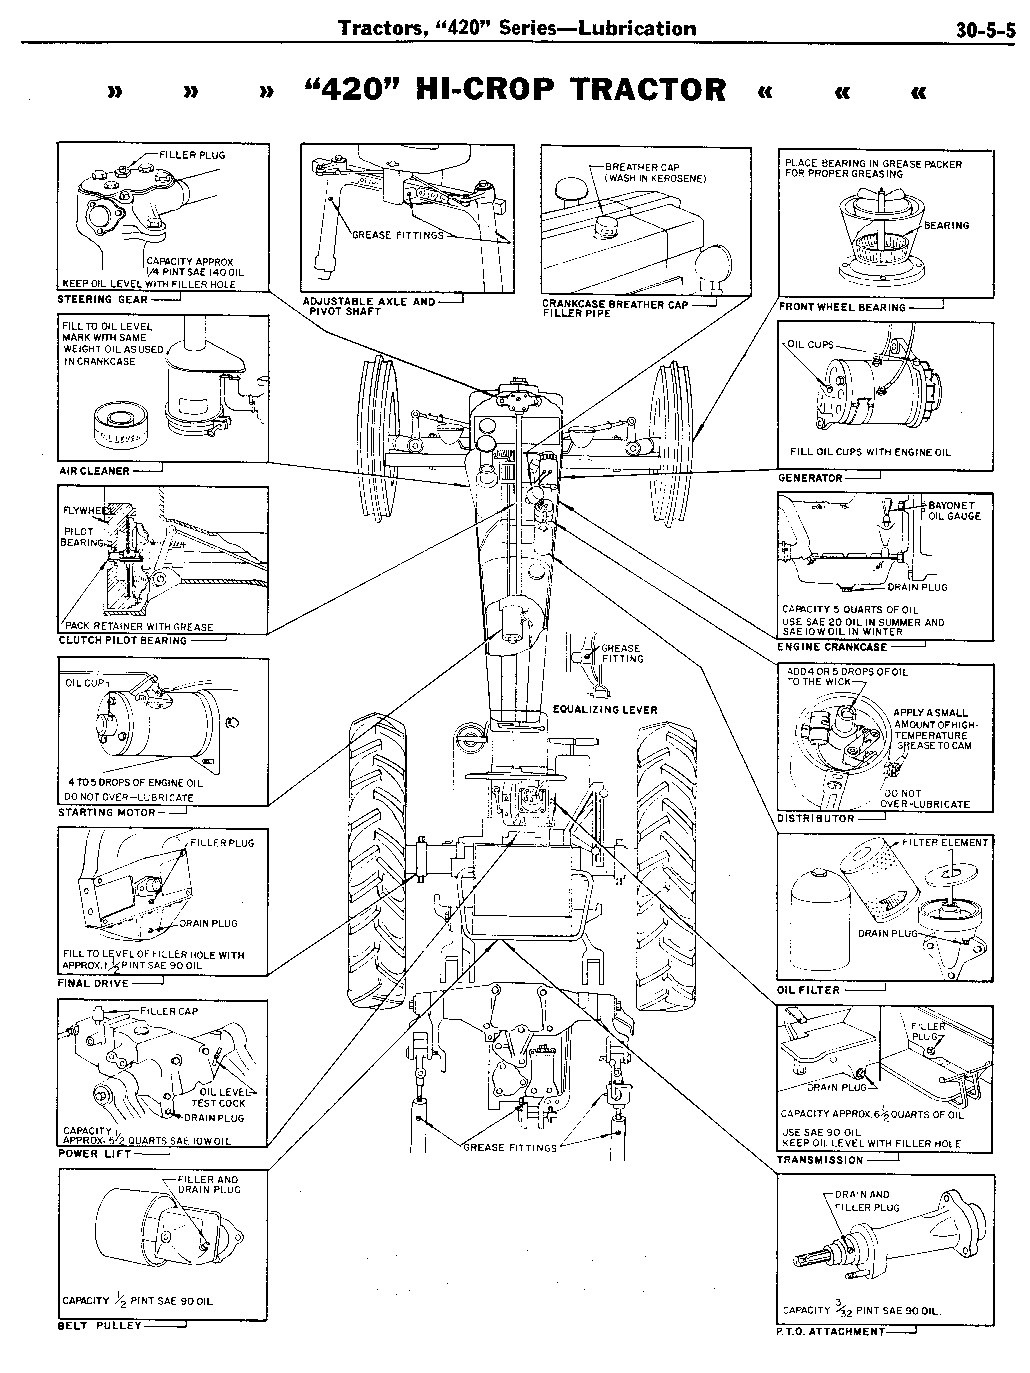 Model 420 Stats Ford Tractor Wiring Diagram 420h